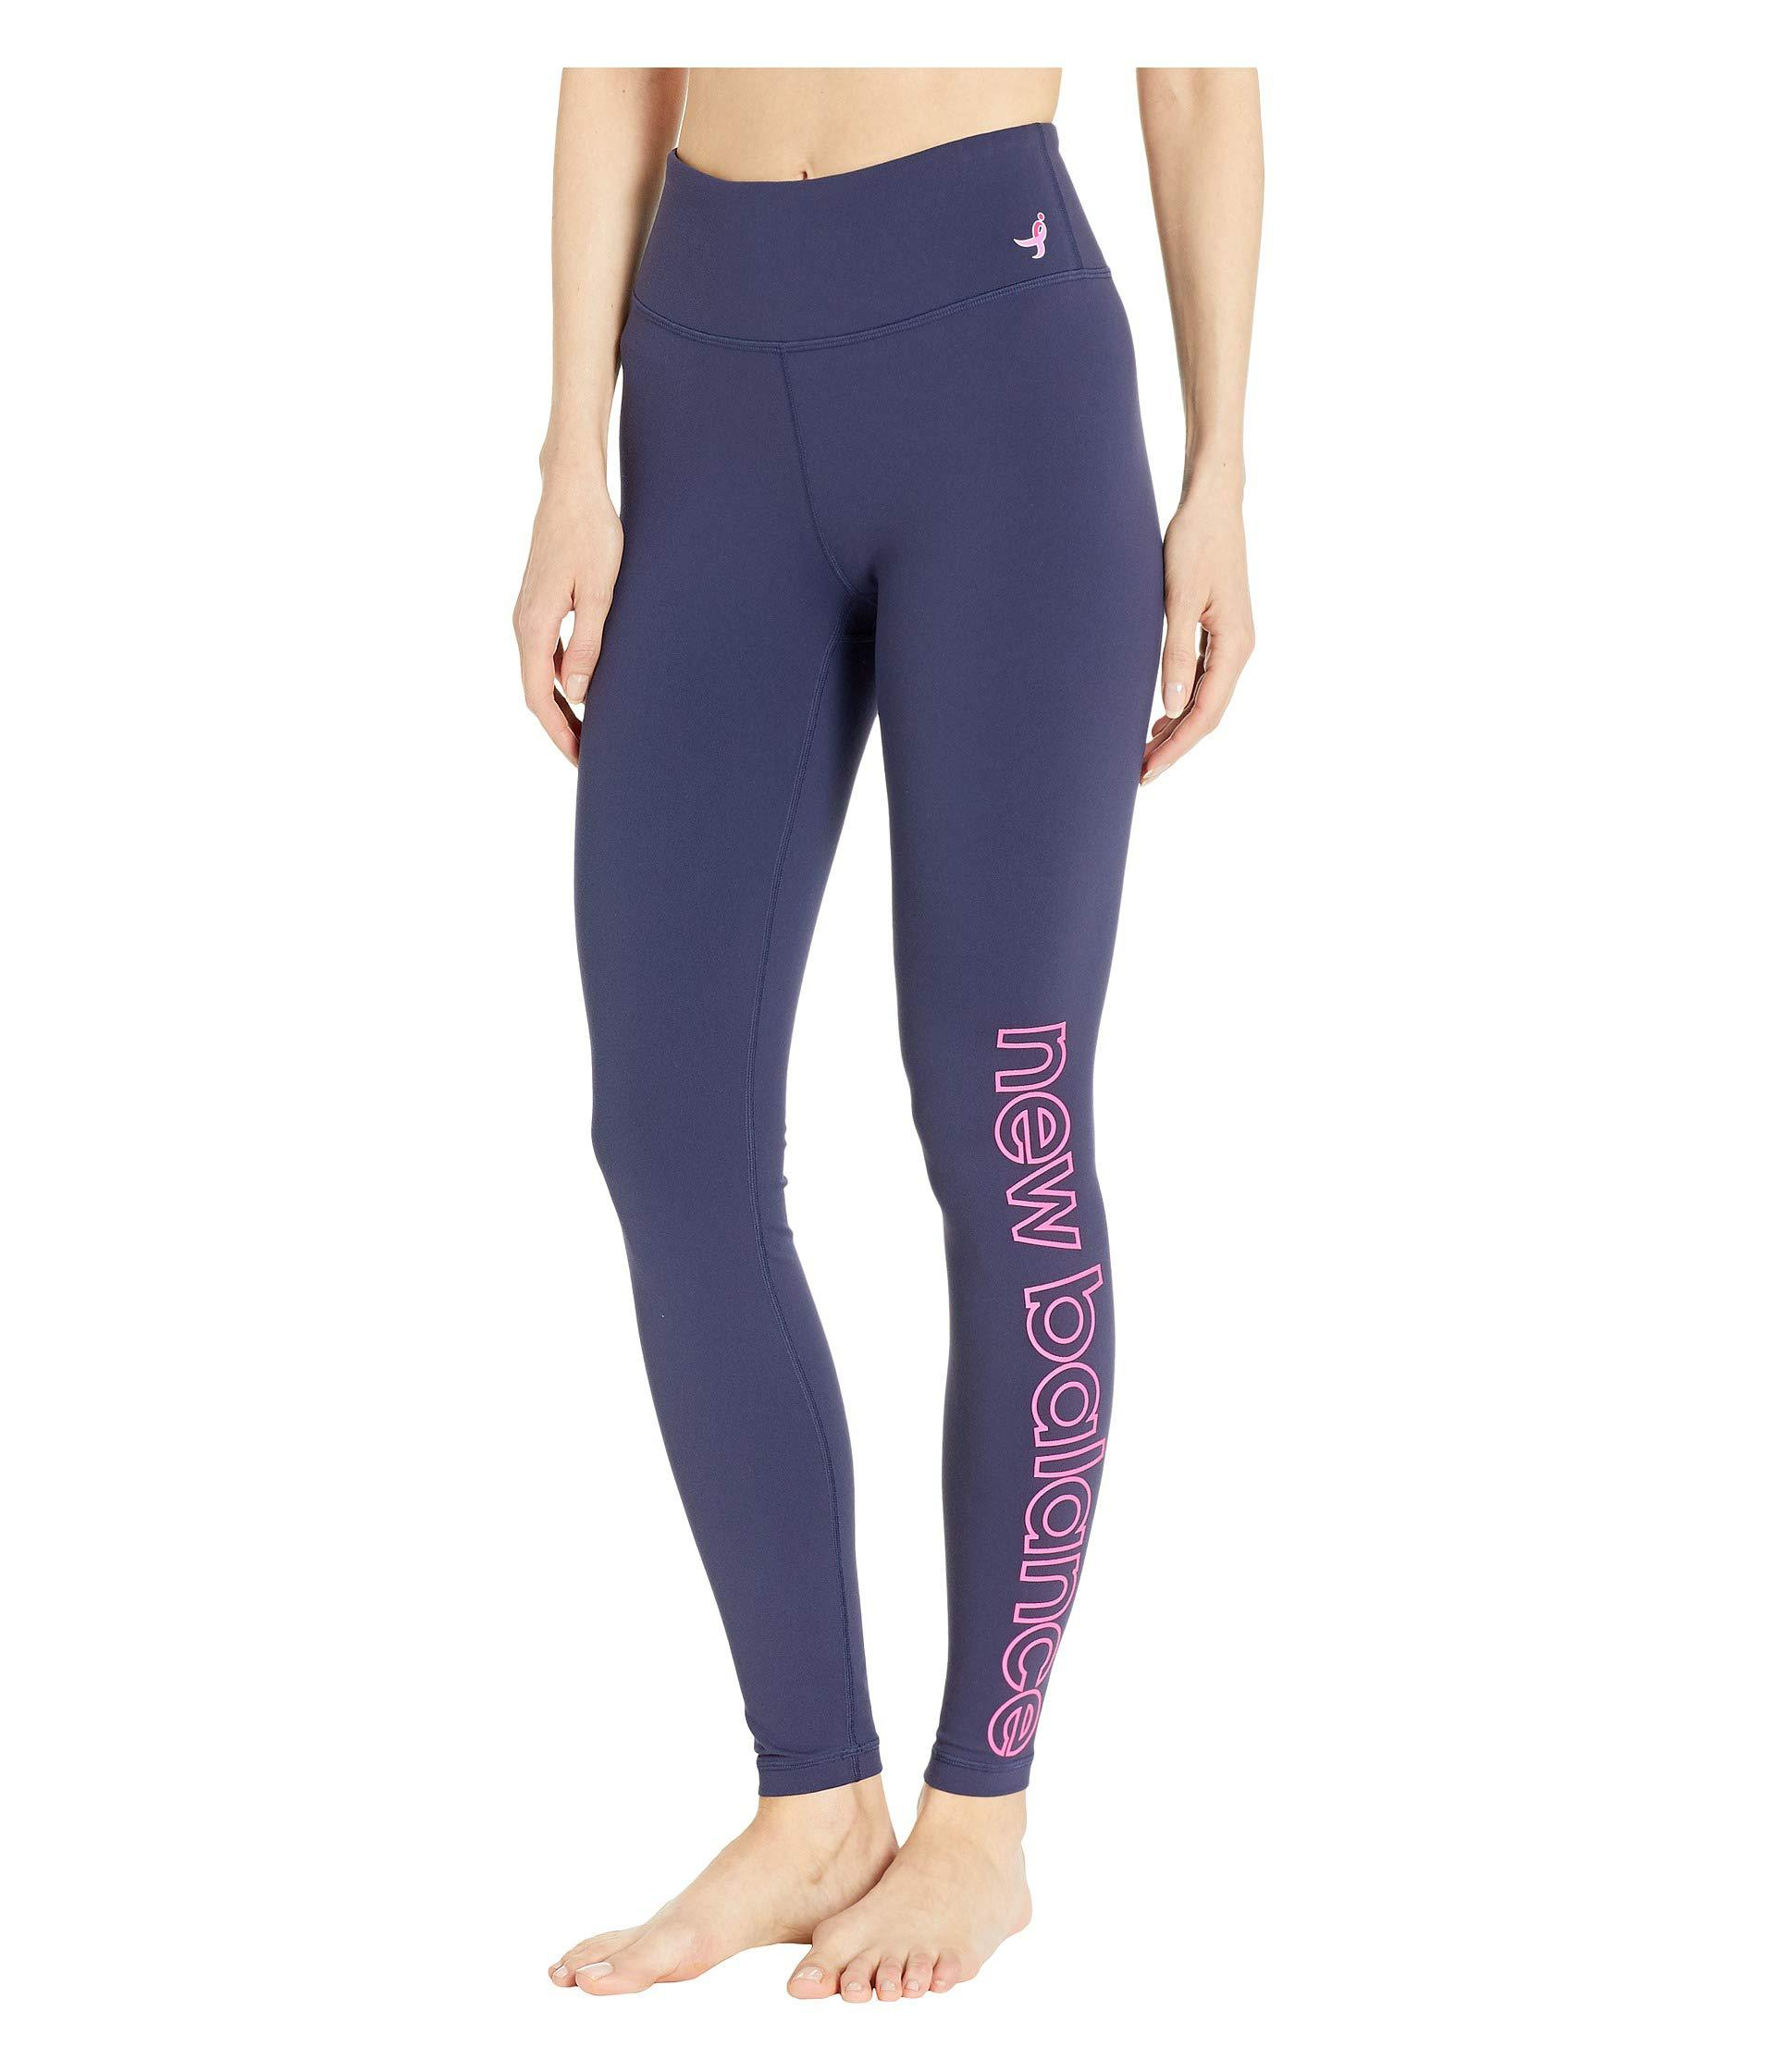 96ca8cefd386c4 Lyst - New Balance Printed High-rise Transform Tights in Blue